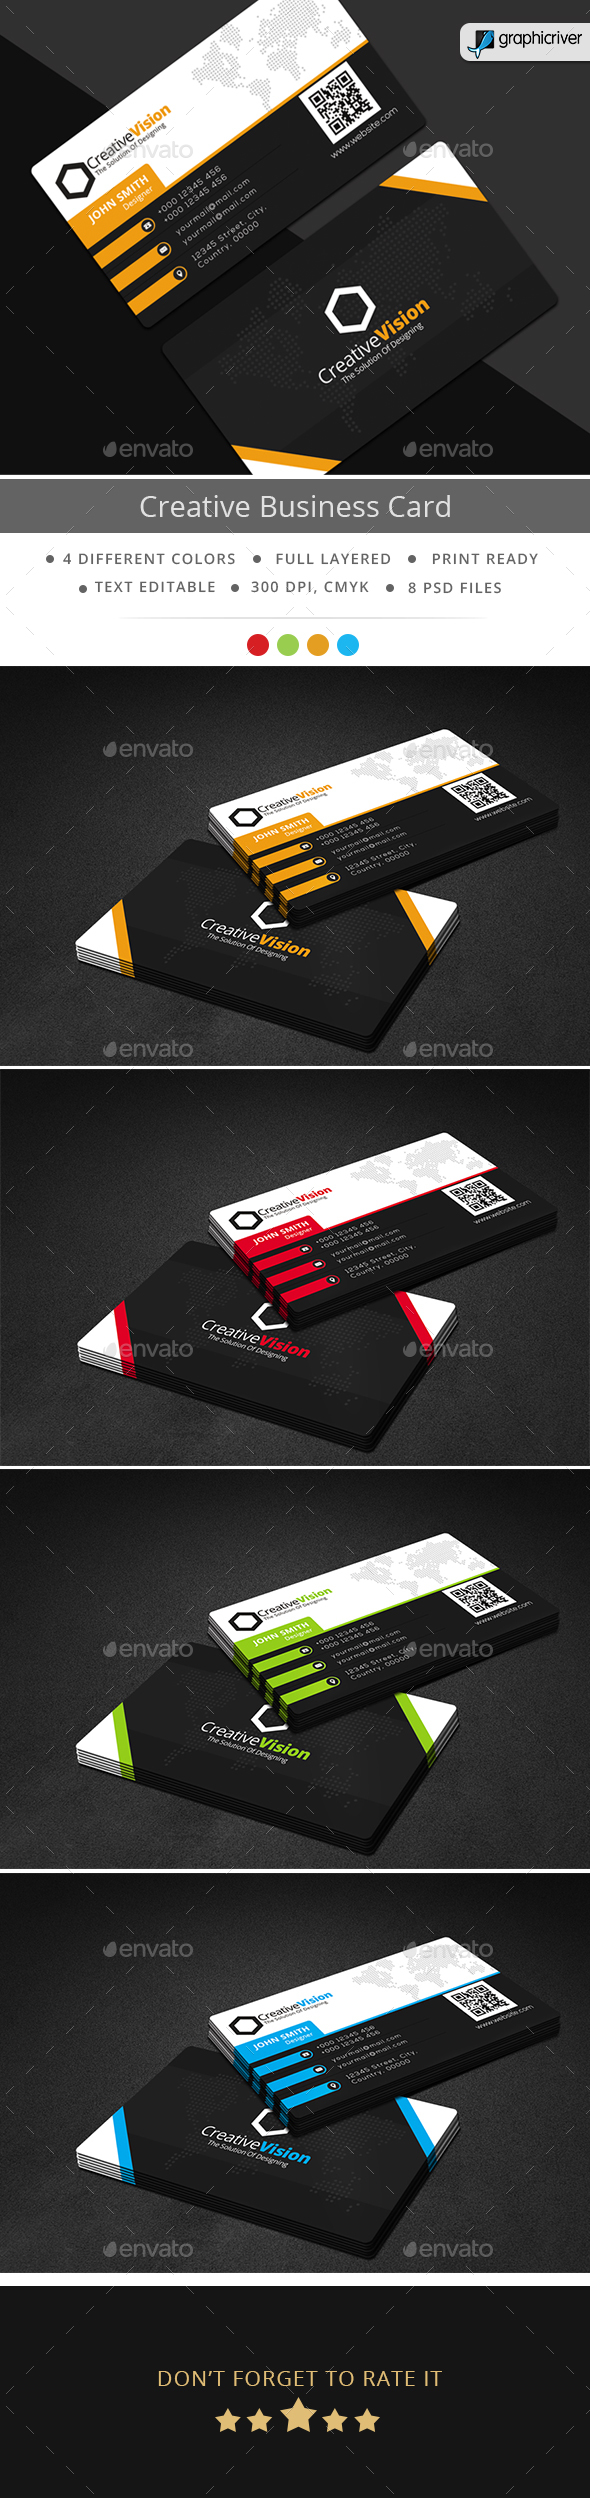 Creative Vision Business Card - Business Cards Print Templates